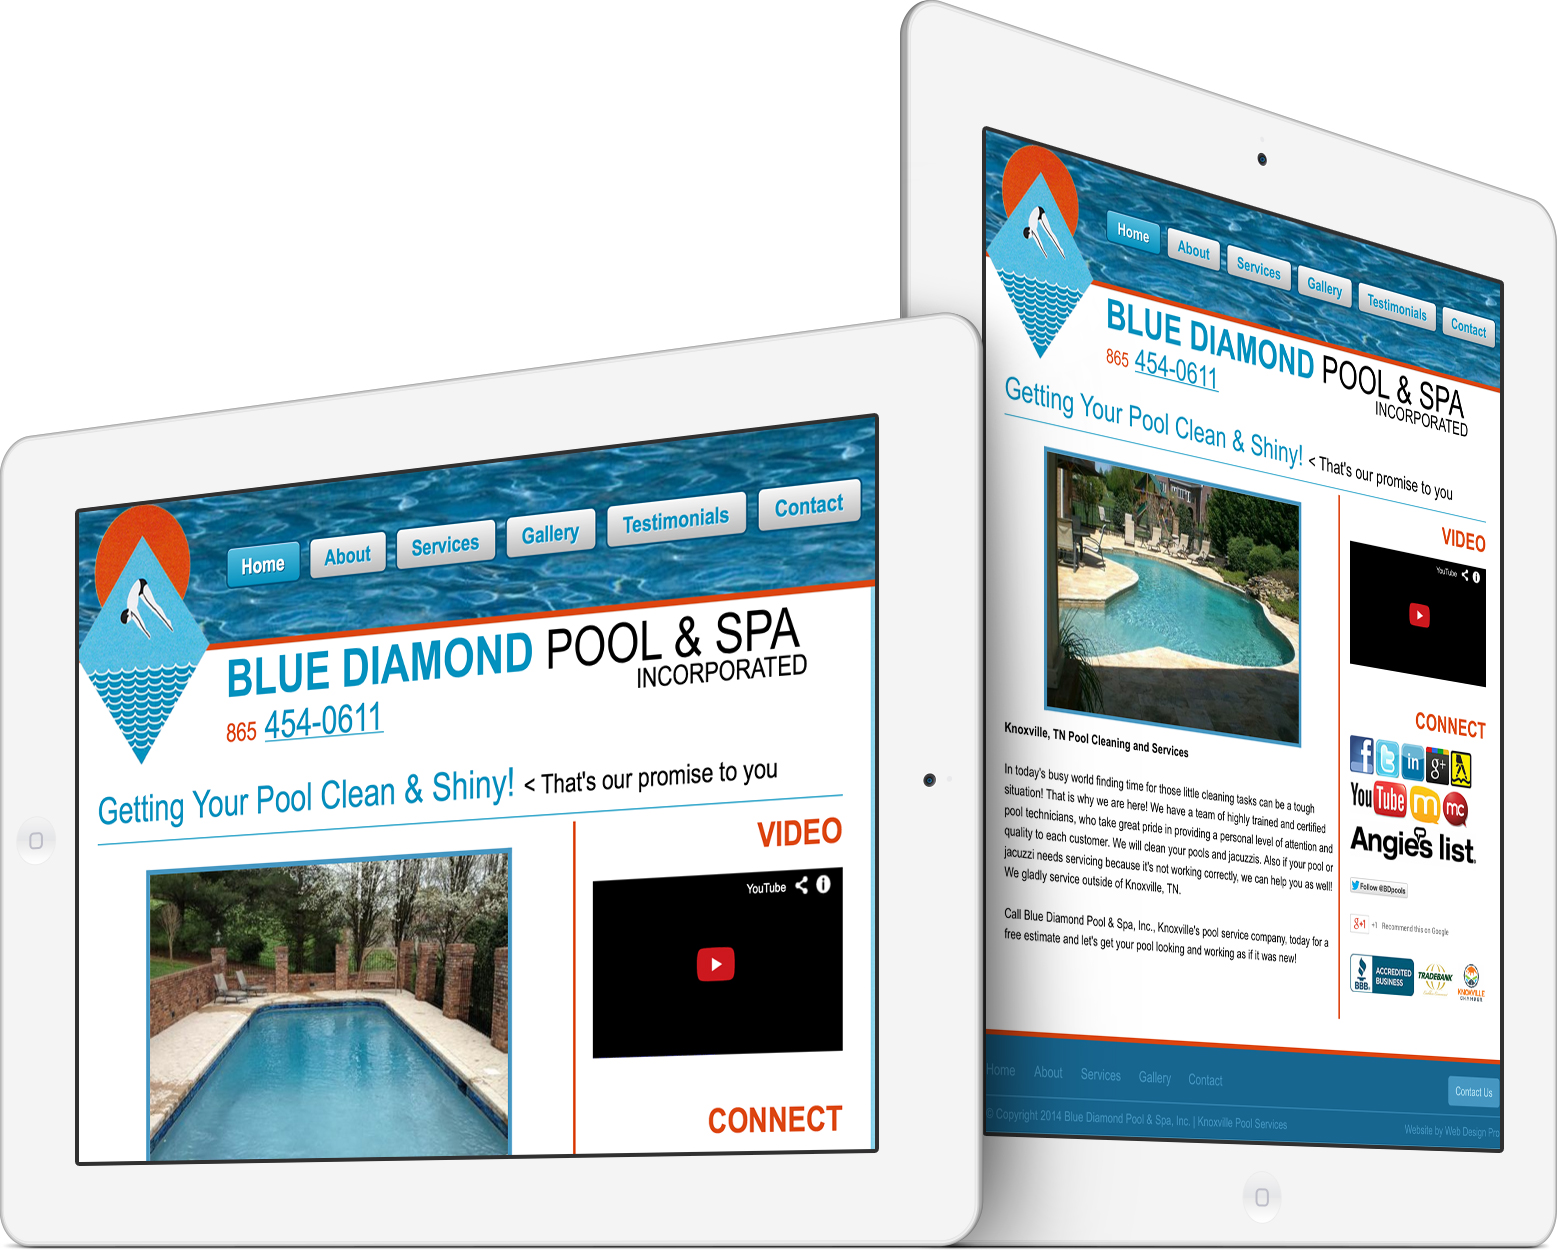 Blue Diamond Pool & Spa on an iPad